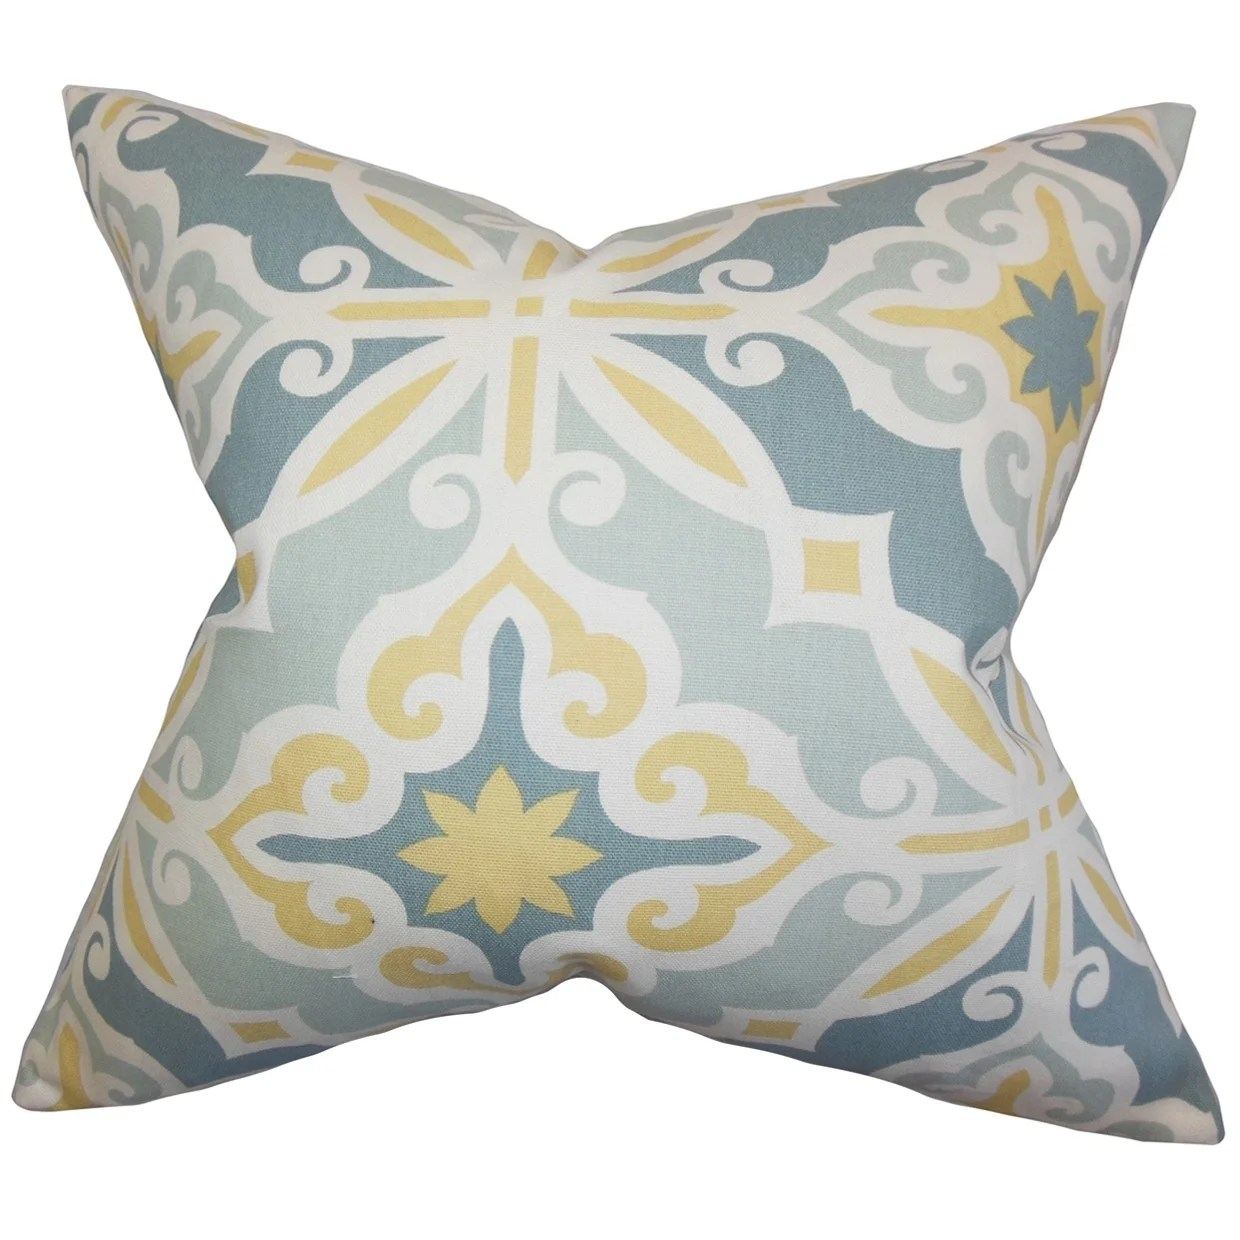 Adriel Geometric Blue Feather Filled 18-inch Throw Pillow